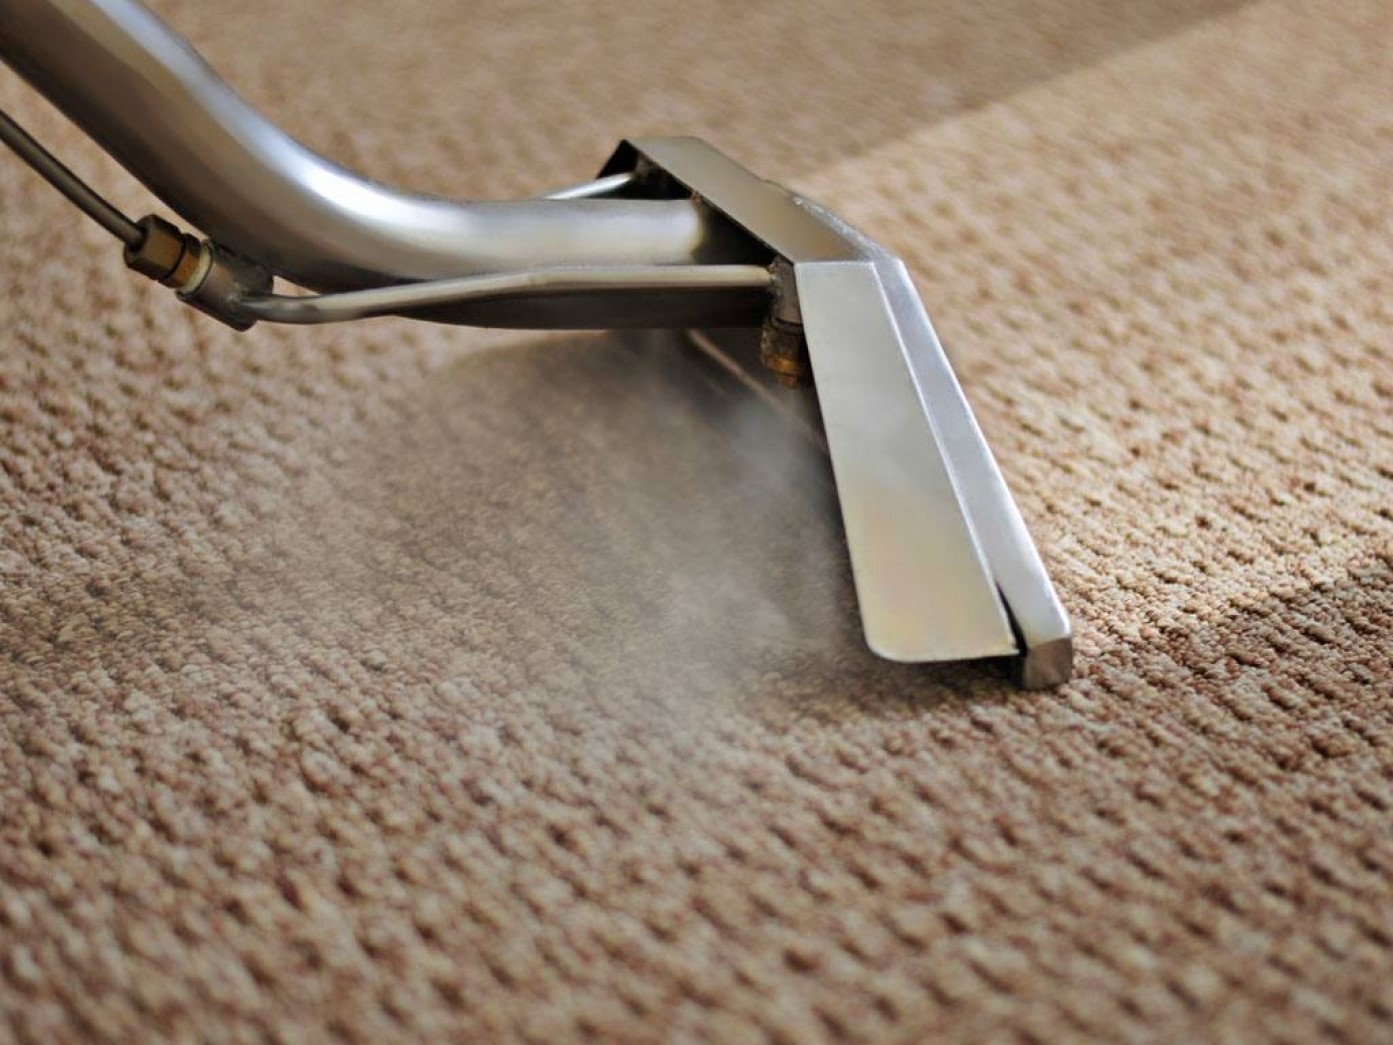 Why Your Carpet Sucks Heavy Dust – Carpet Steam Cleaning Solution